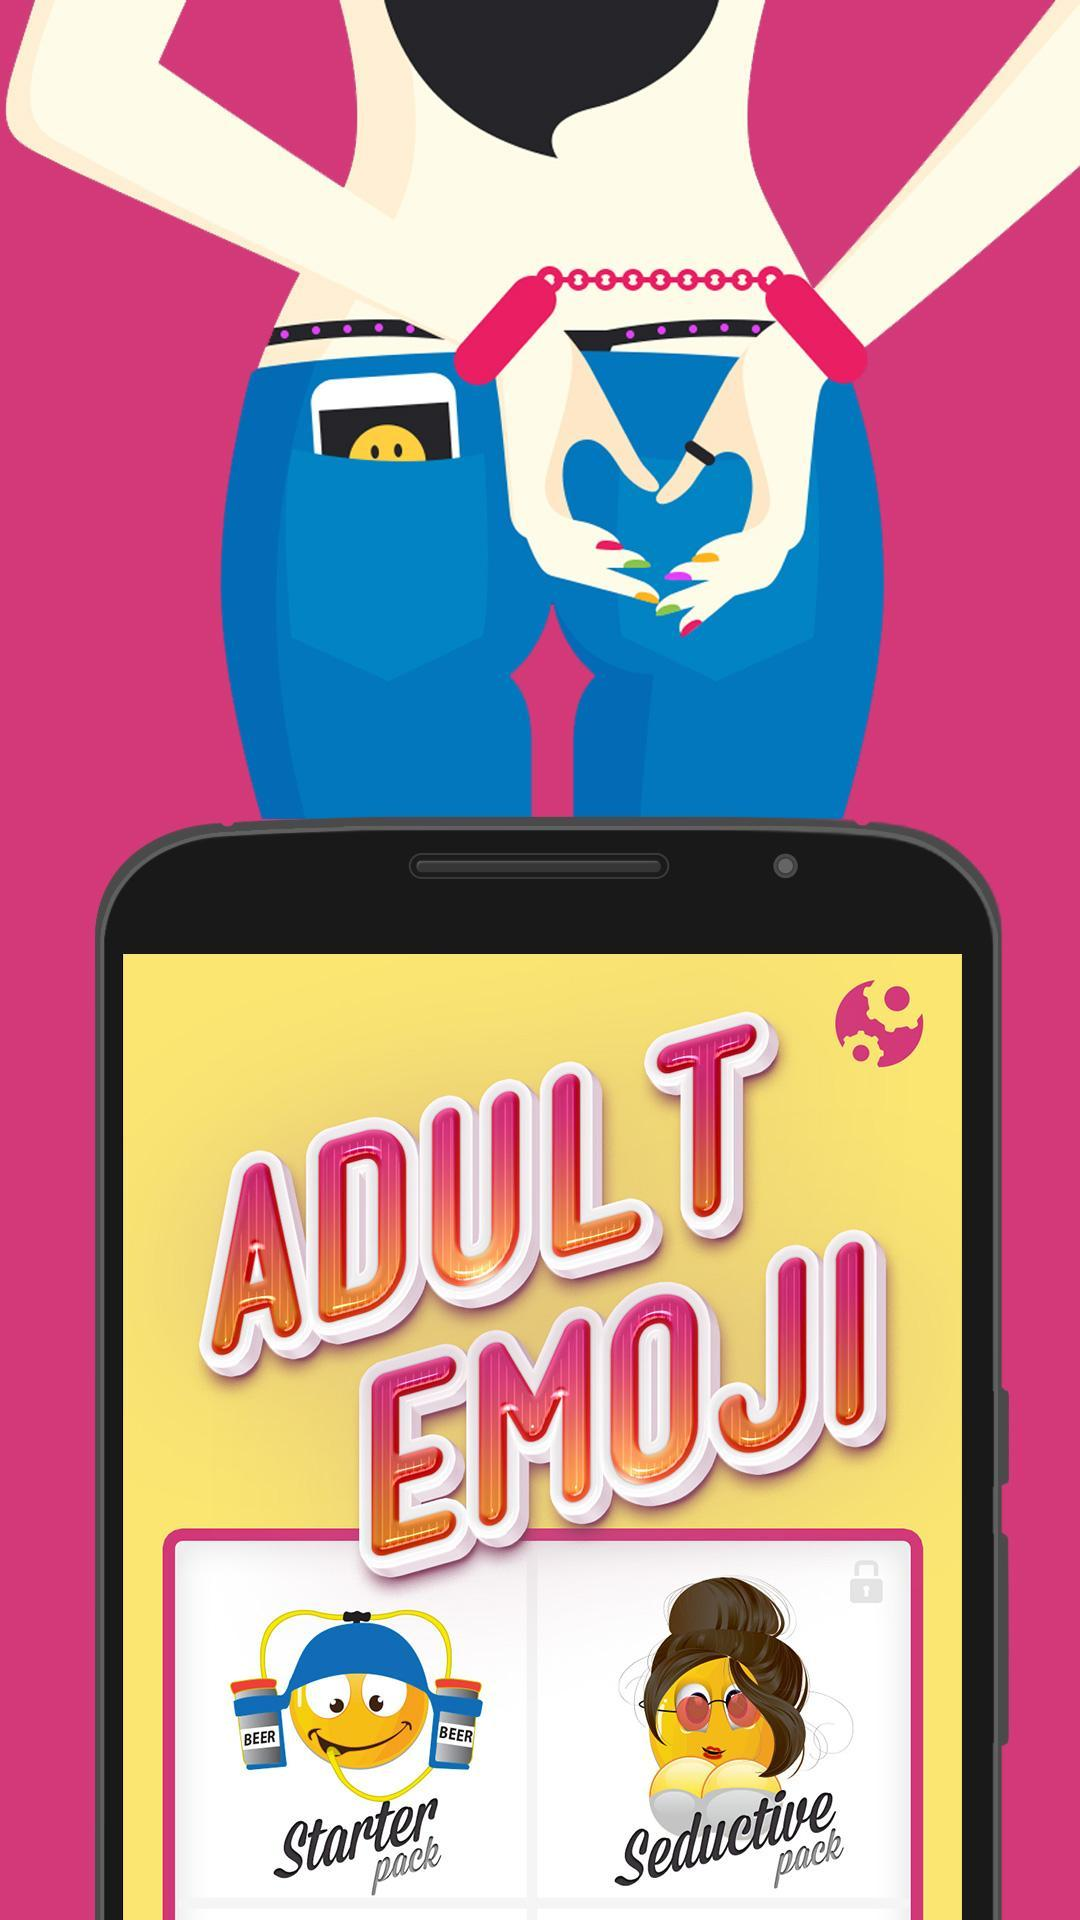 Adult XXX Emoji Sexy Emoticons for Android - APK Download